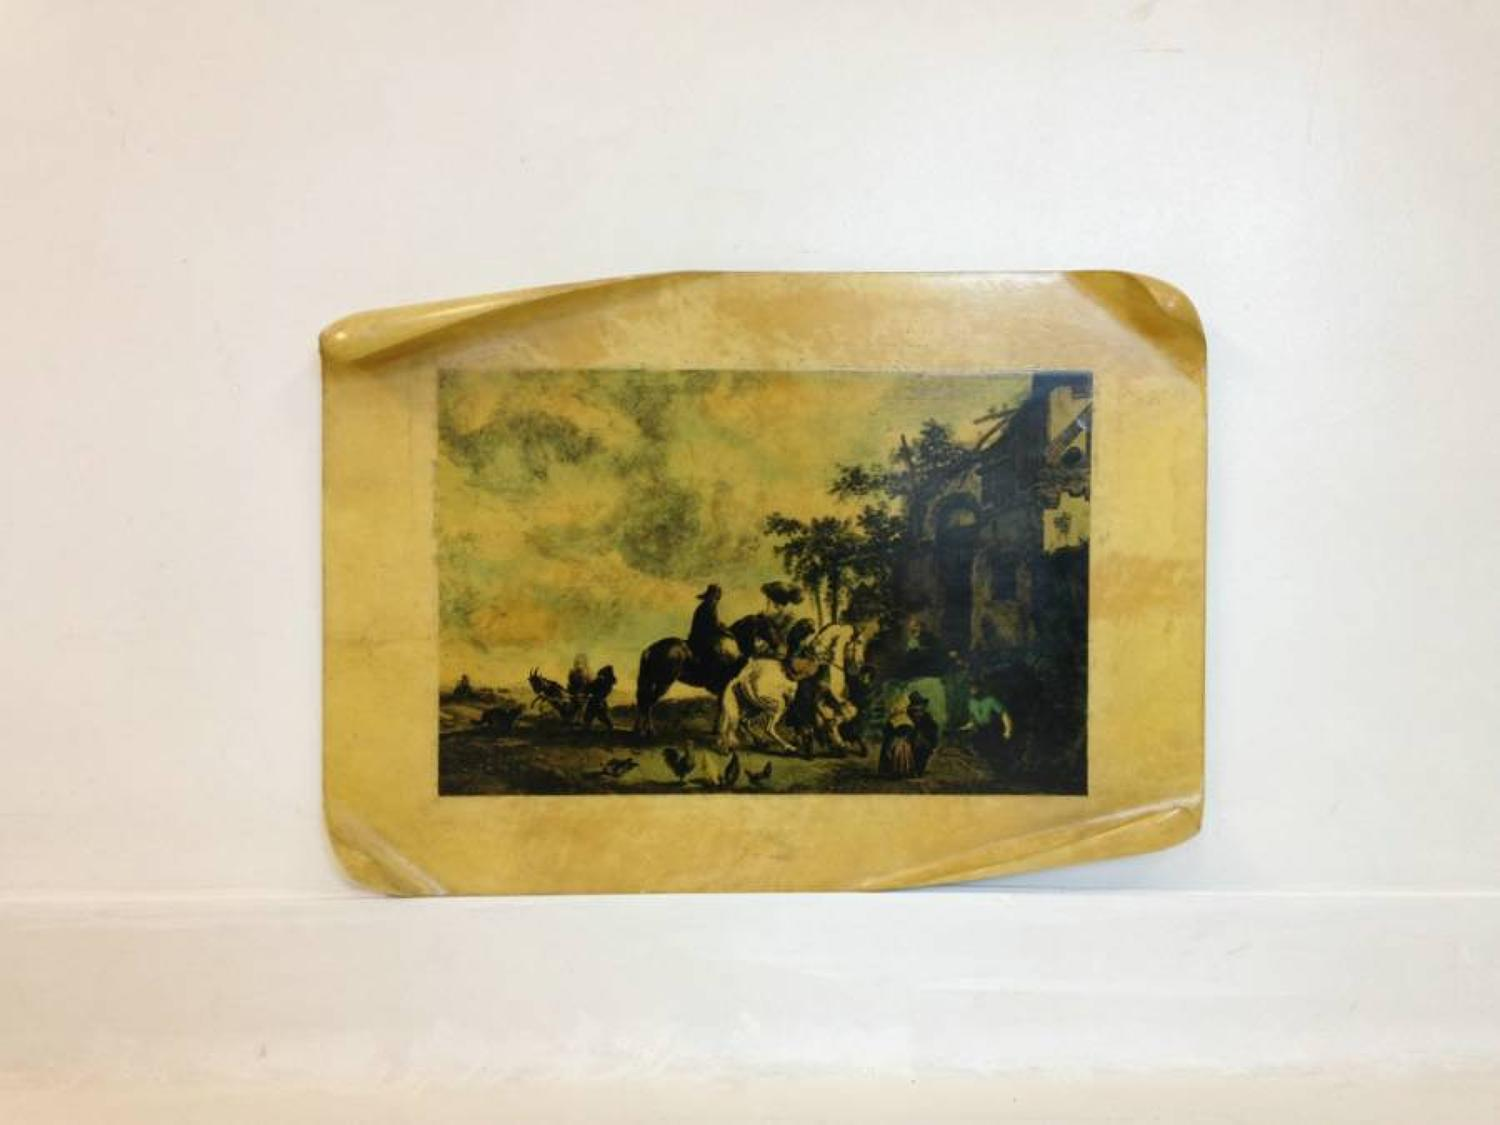 Lacquered parchment wall plaque by Aldo Tura